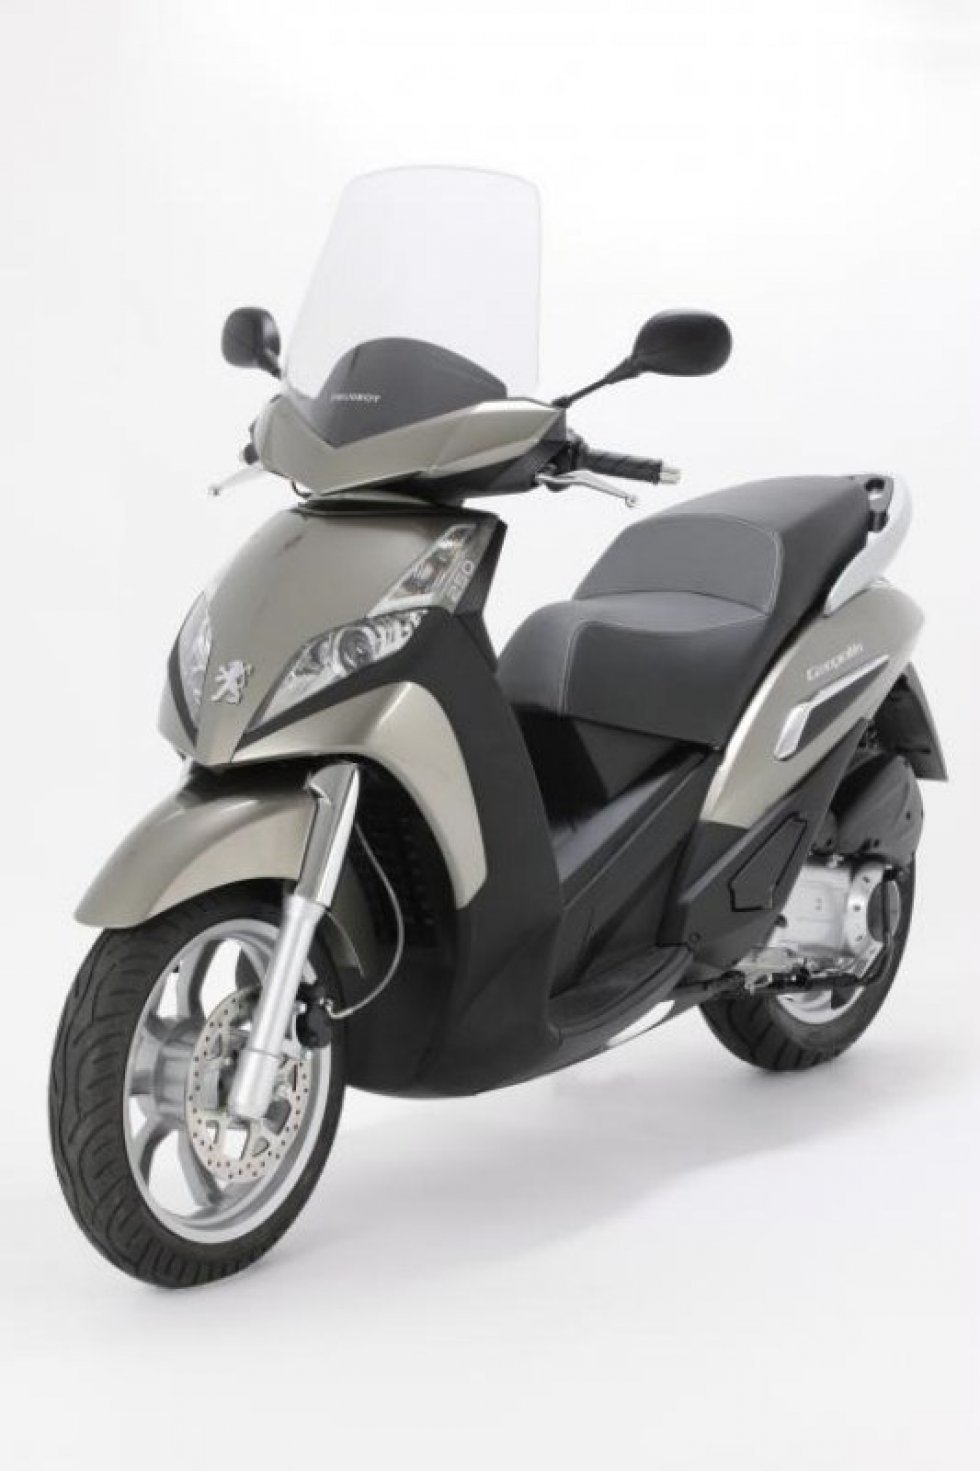 Scooter Peugeot Geopolis 300